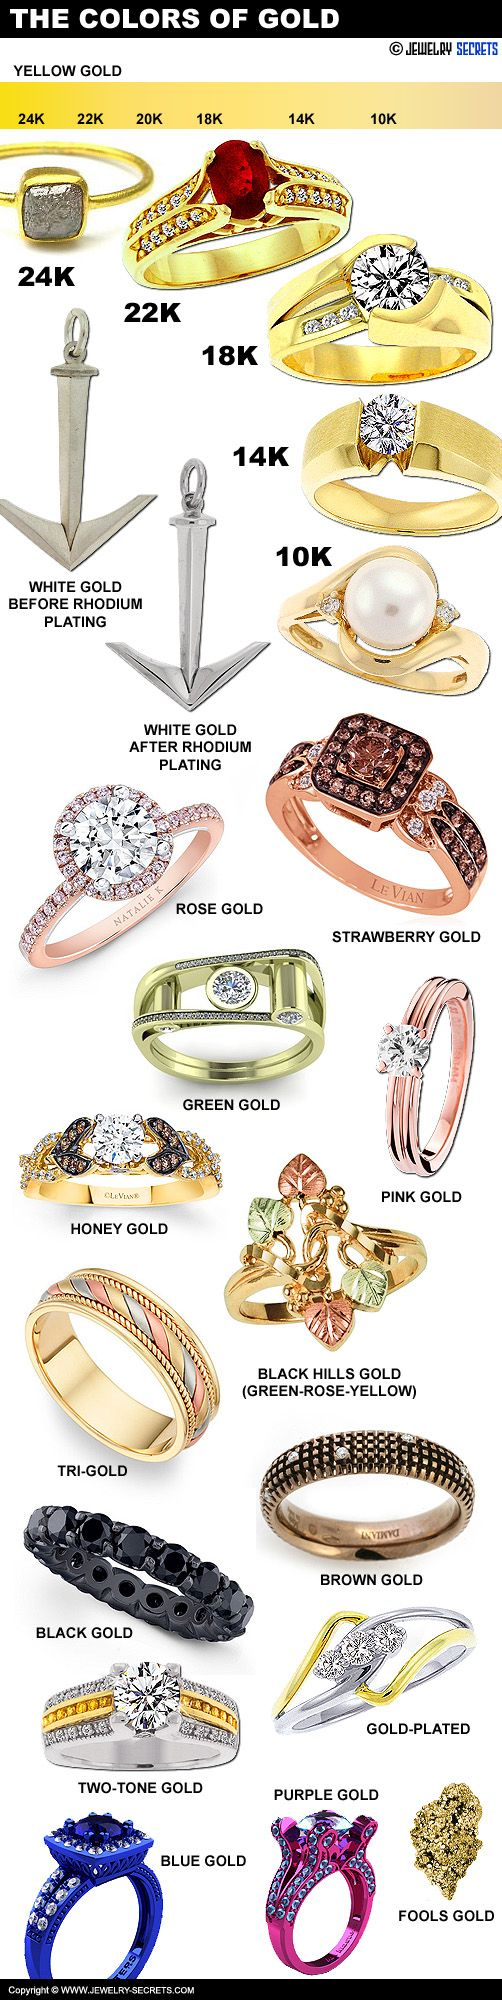 ► ► Check out all the Different Hues and Colors of Gold! Cool Stuff!